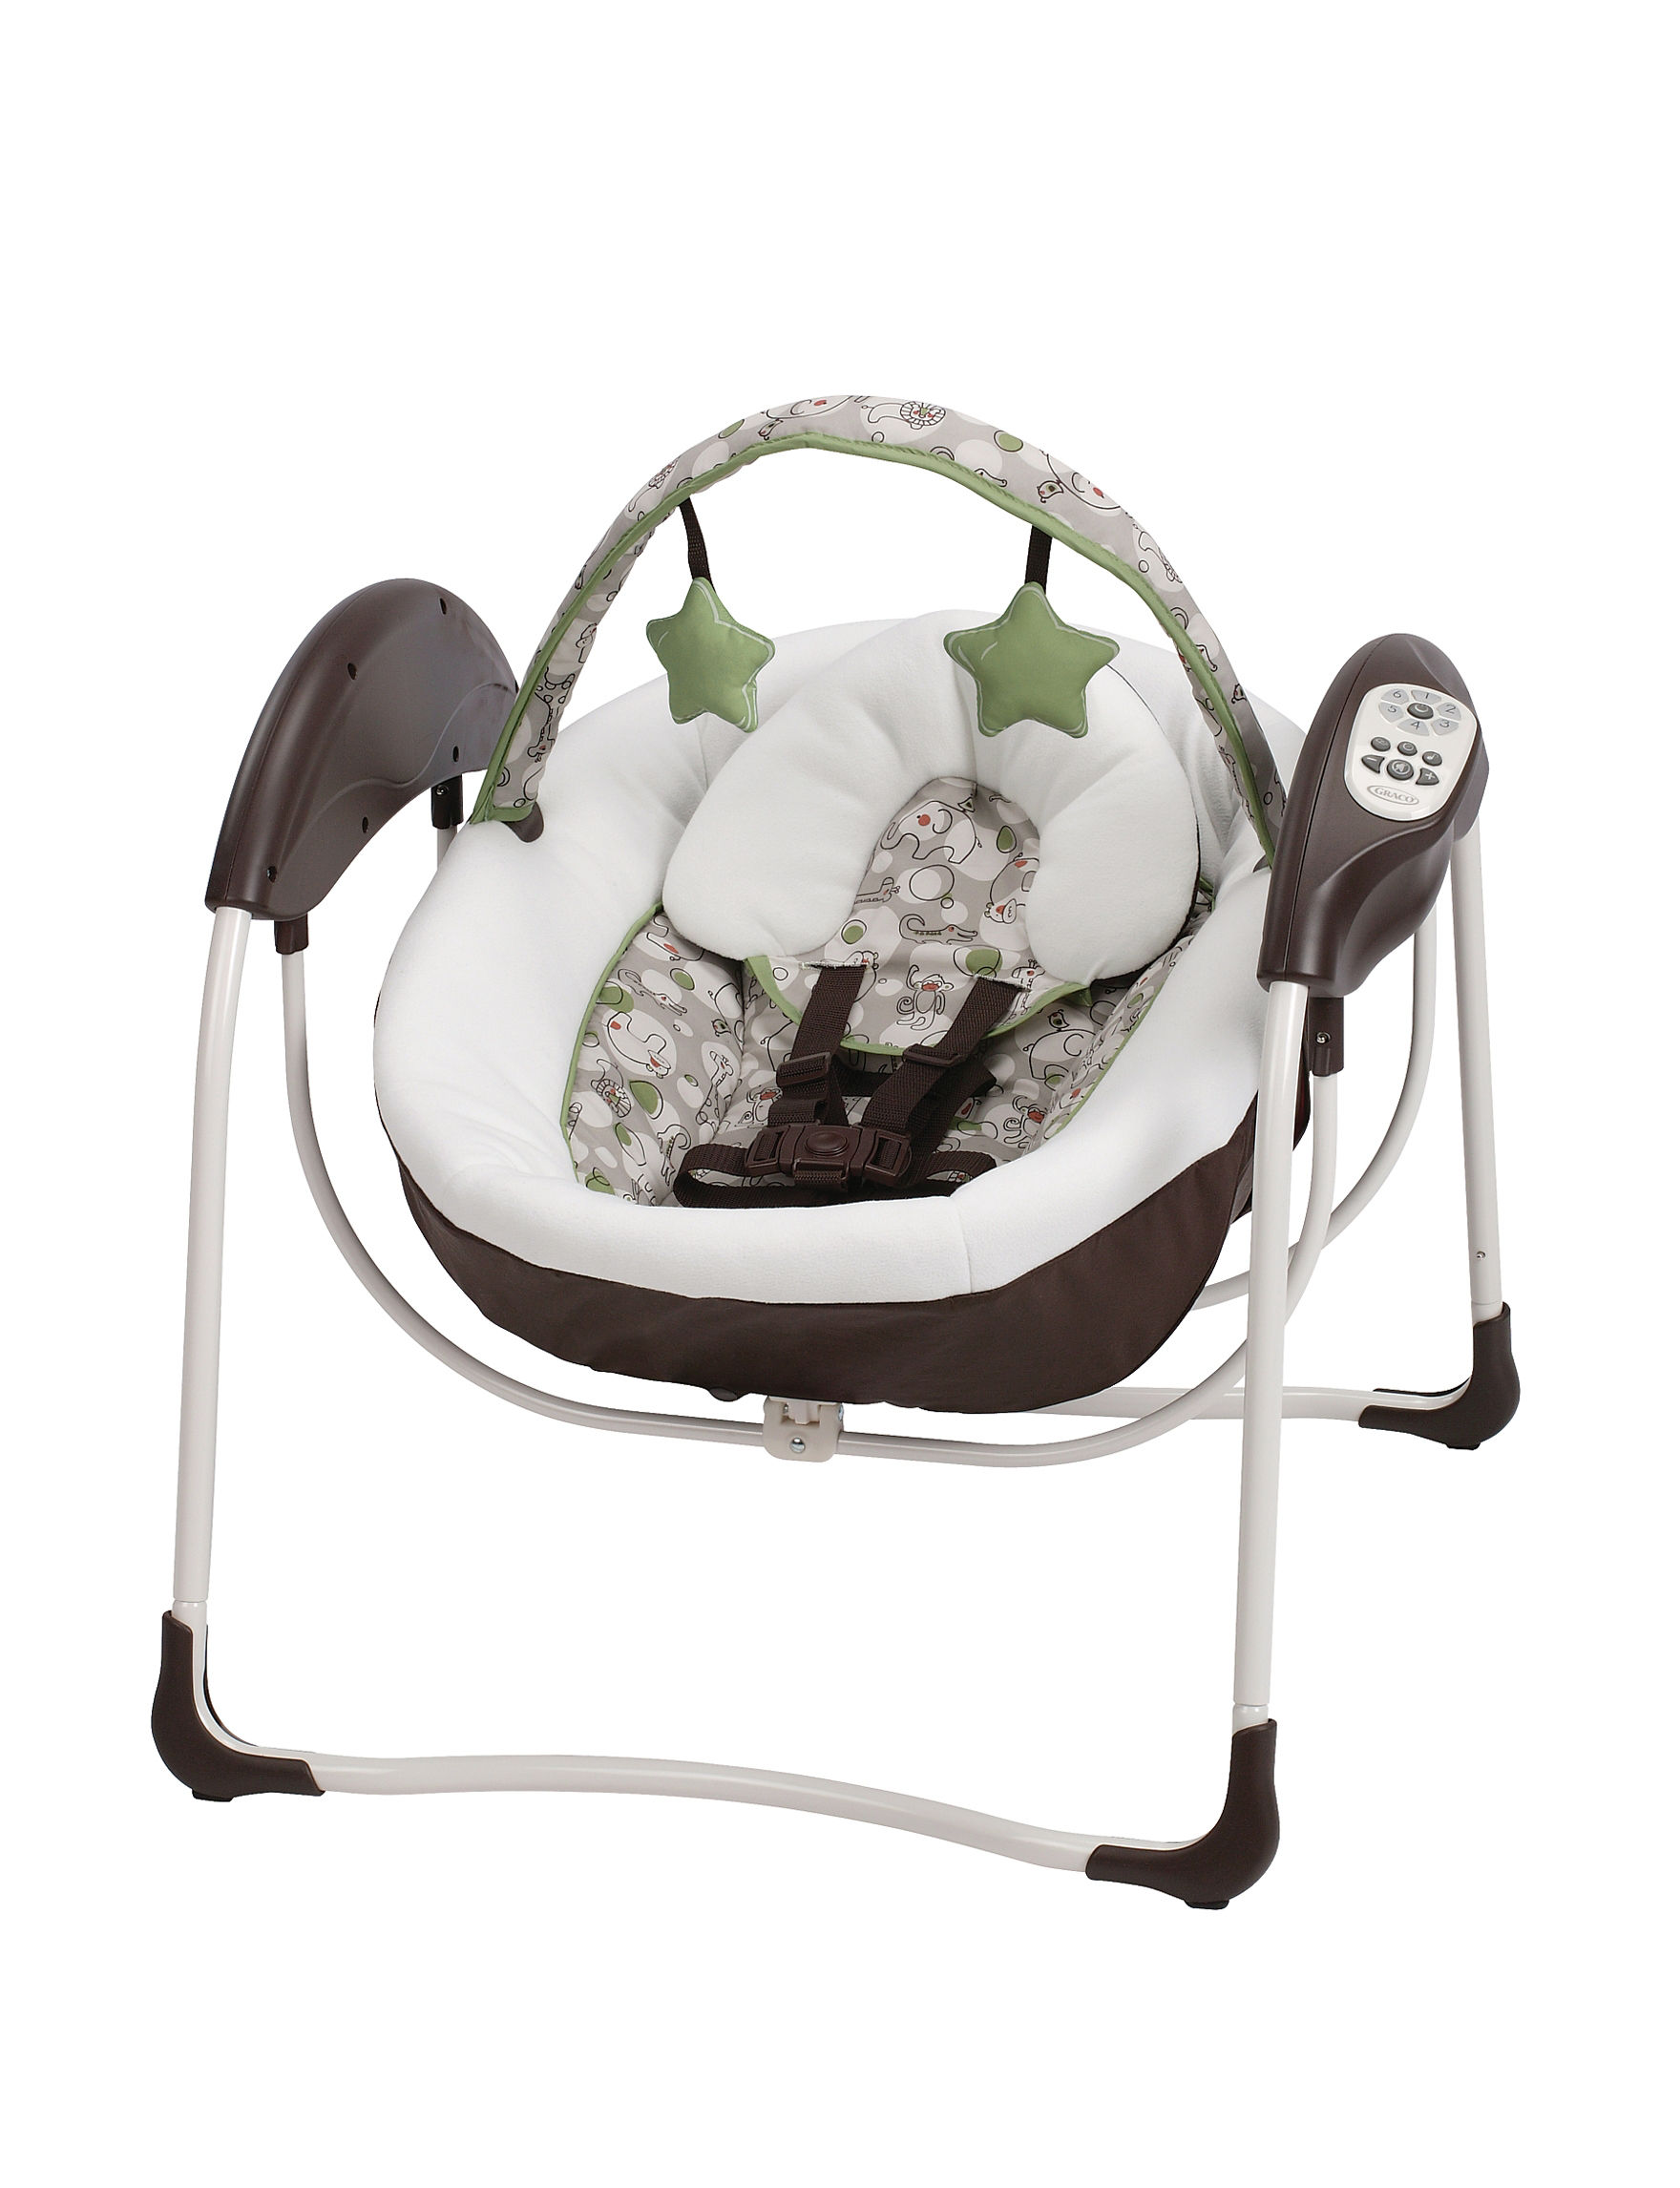 Graco  Swings, Bouncers, & Jumpers